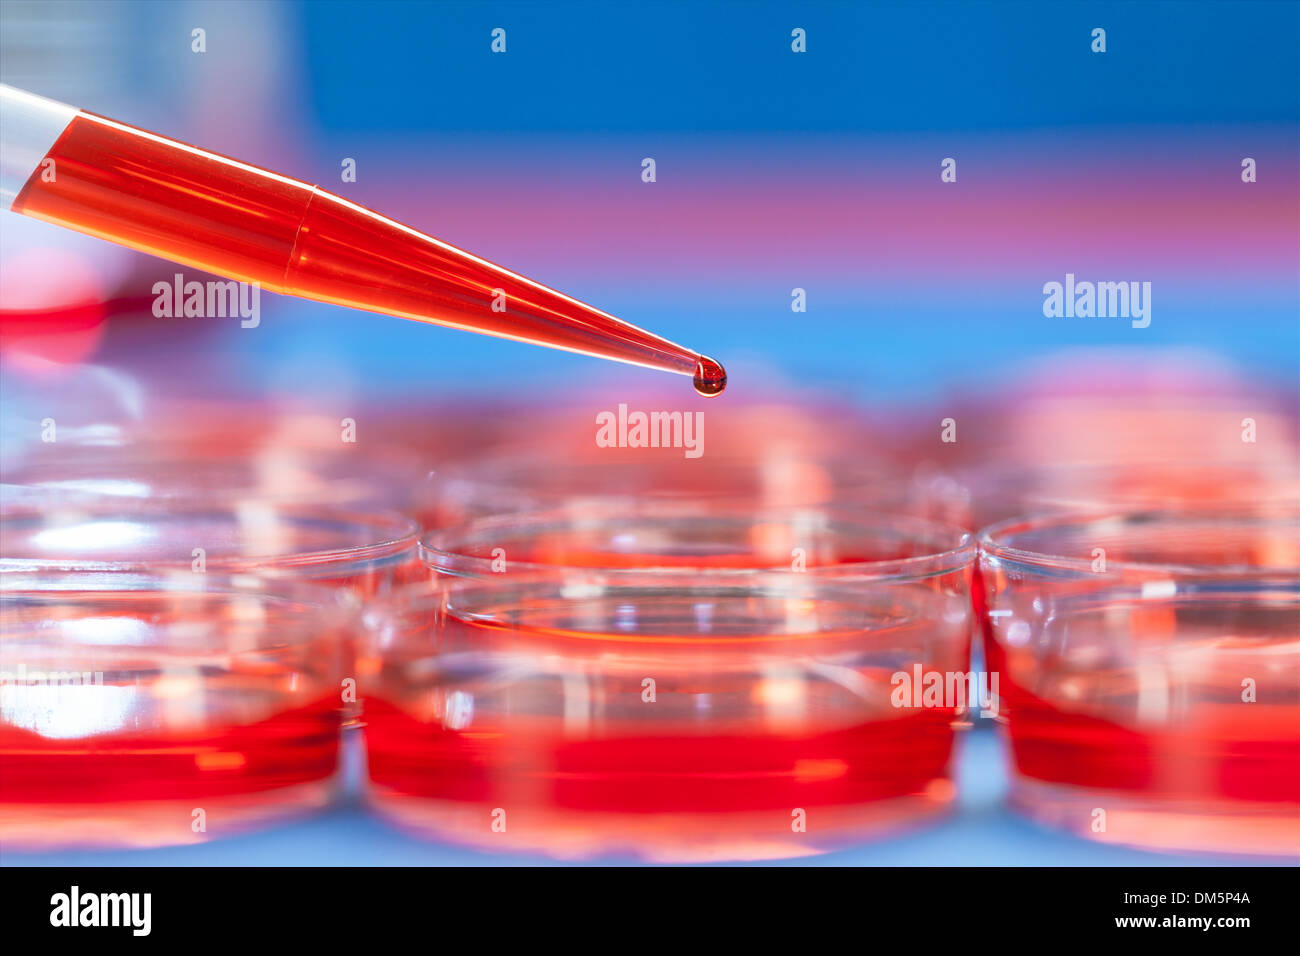 petri dishes and micropipette, pathogens test - Stock Image